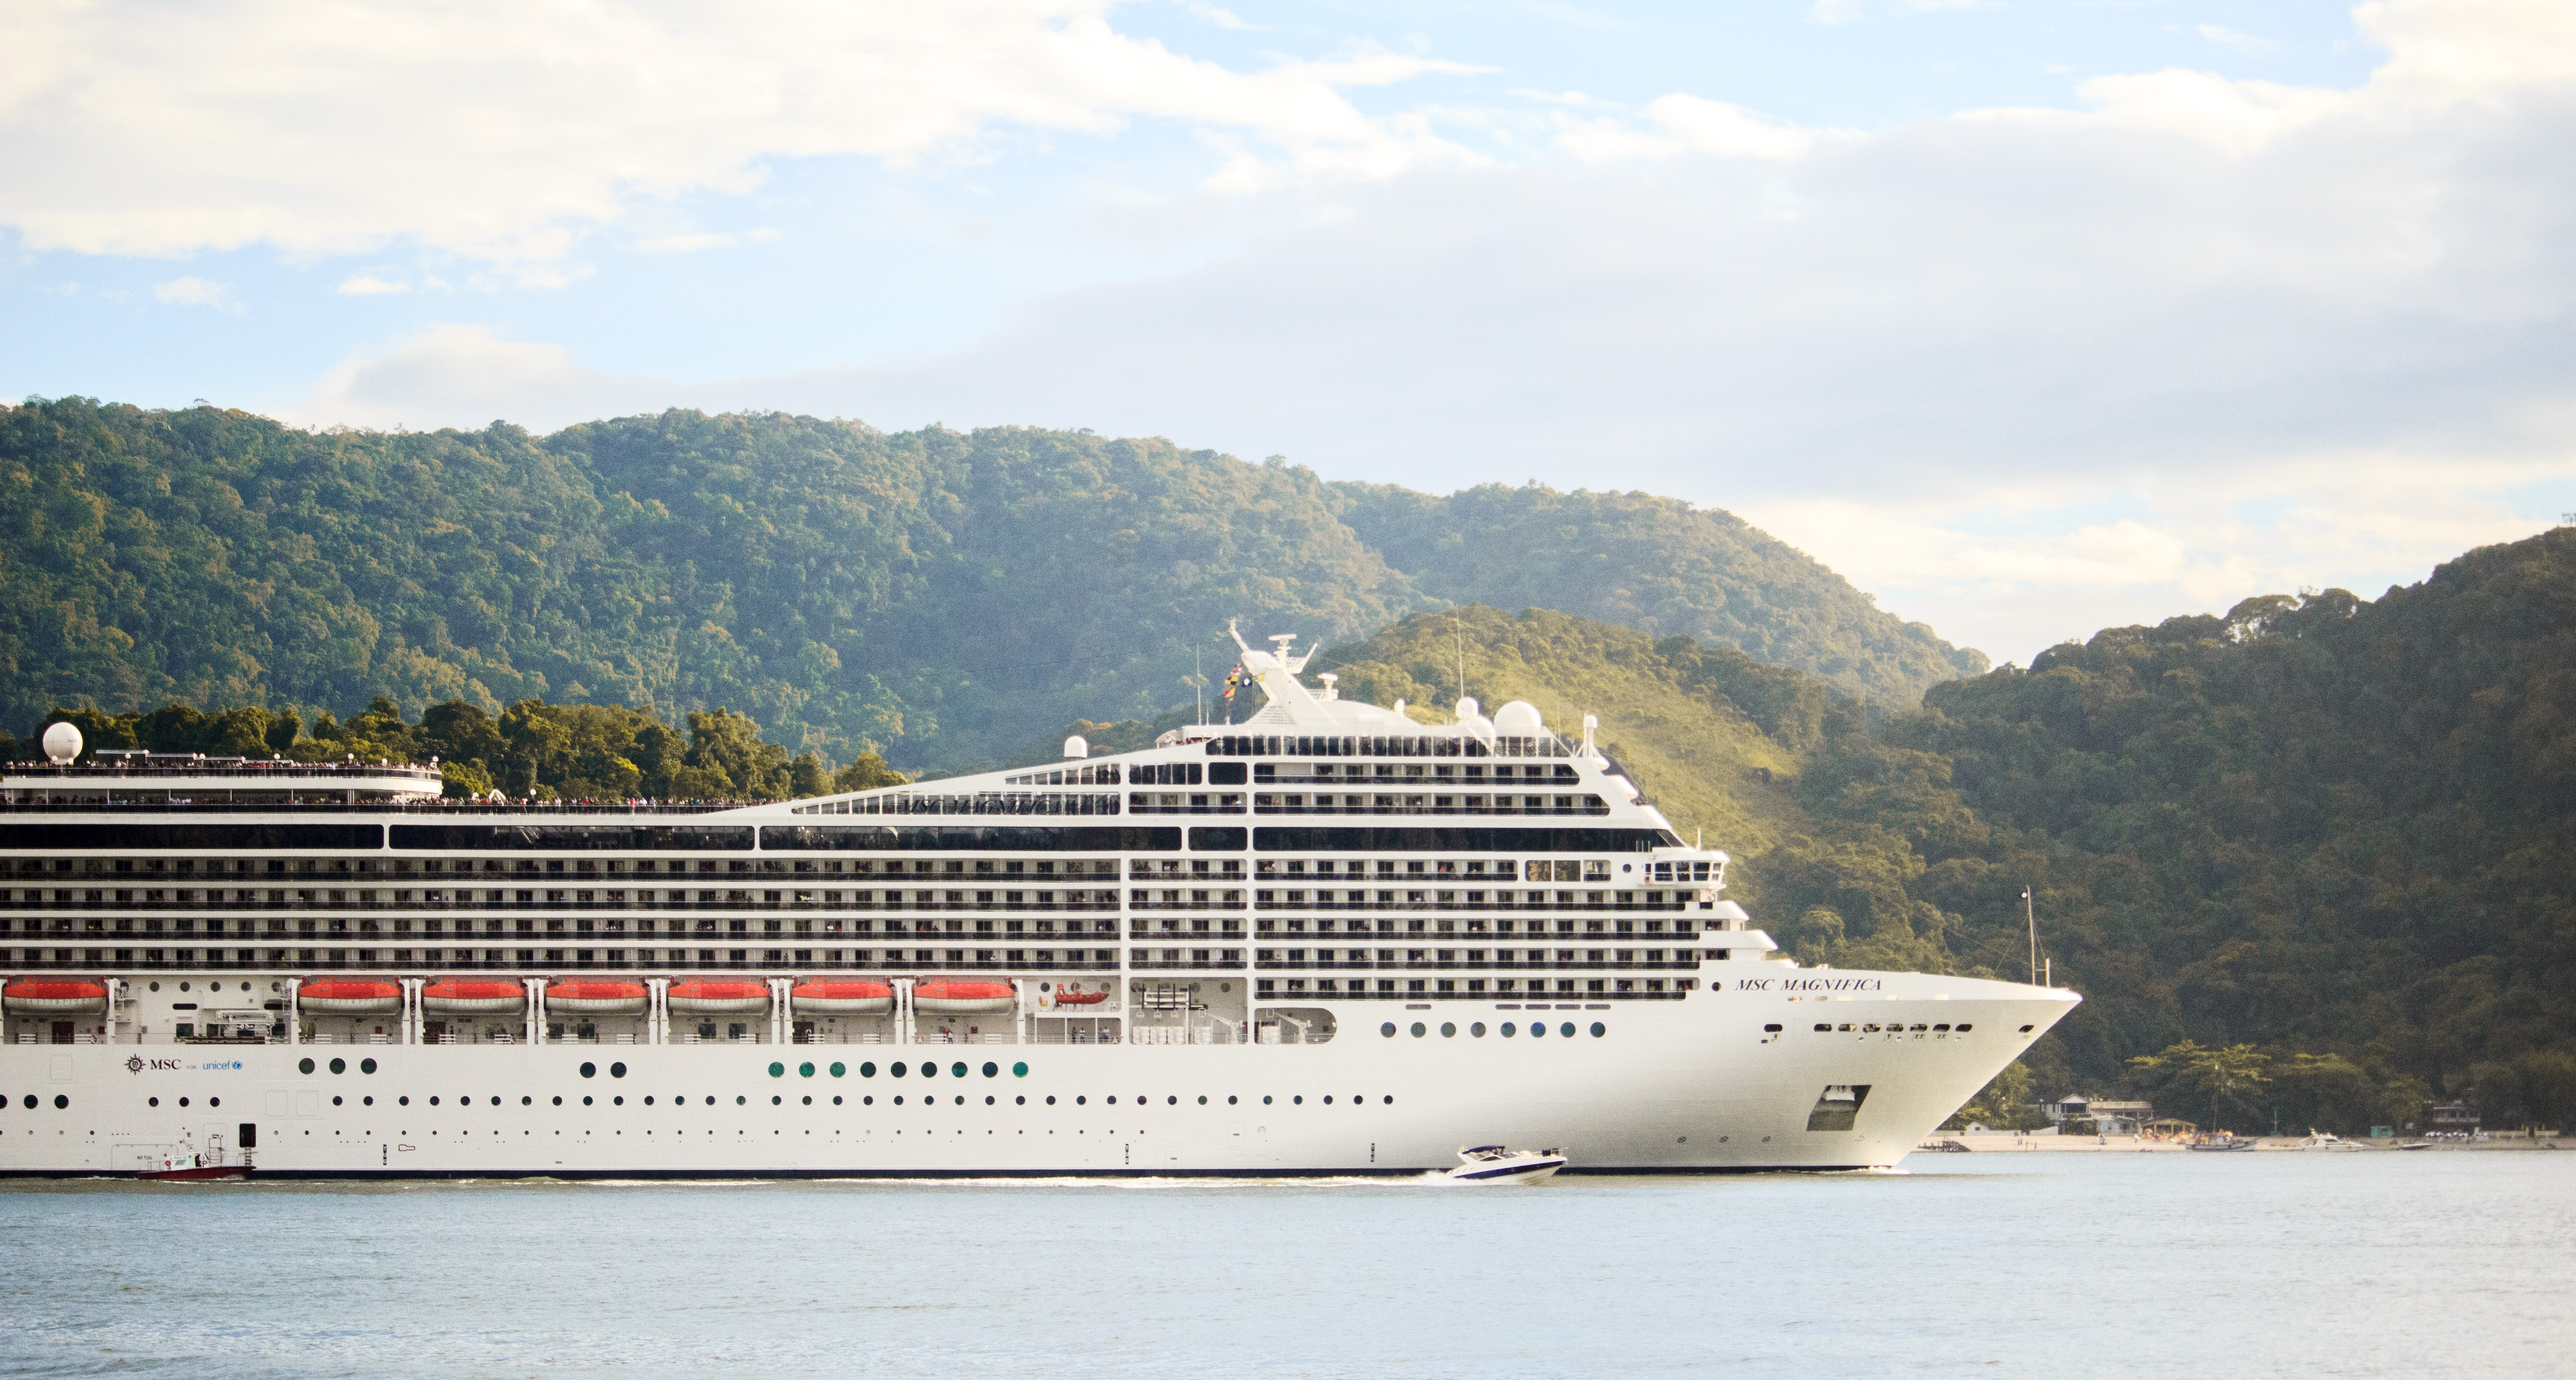 5 Reasons To Start The New Year With A Cruise